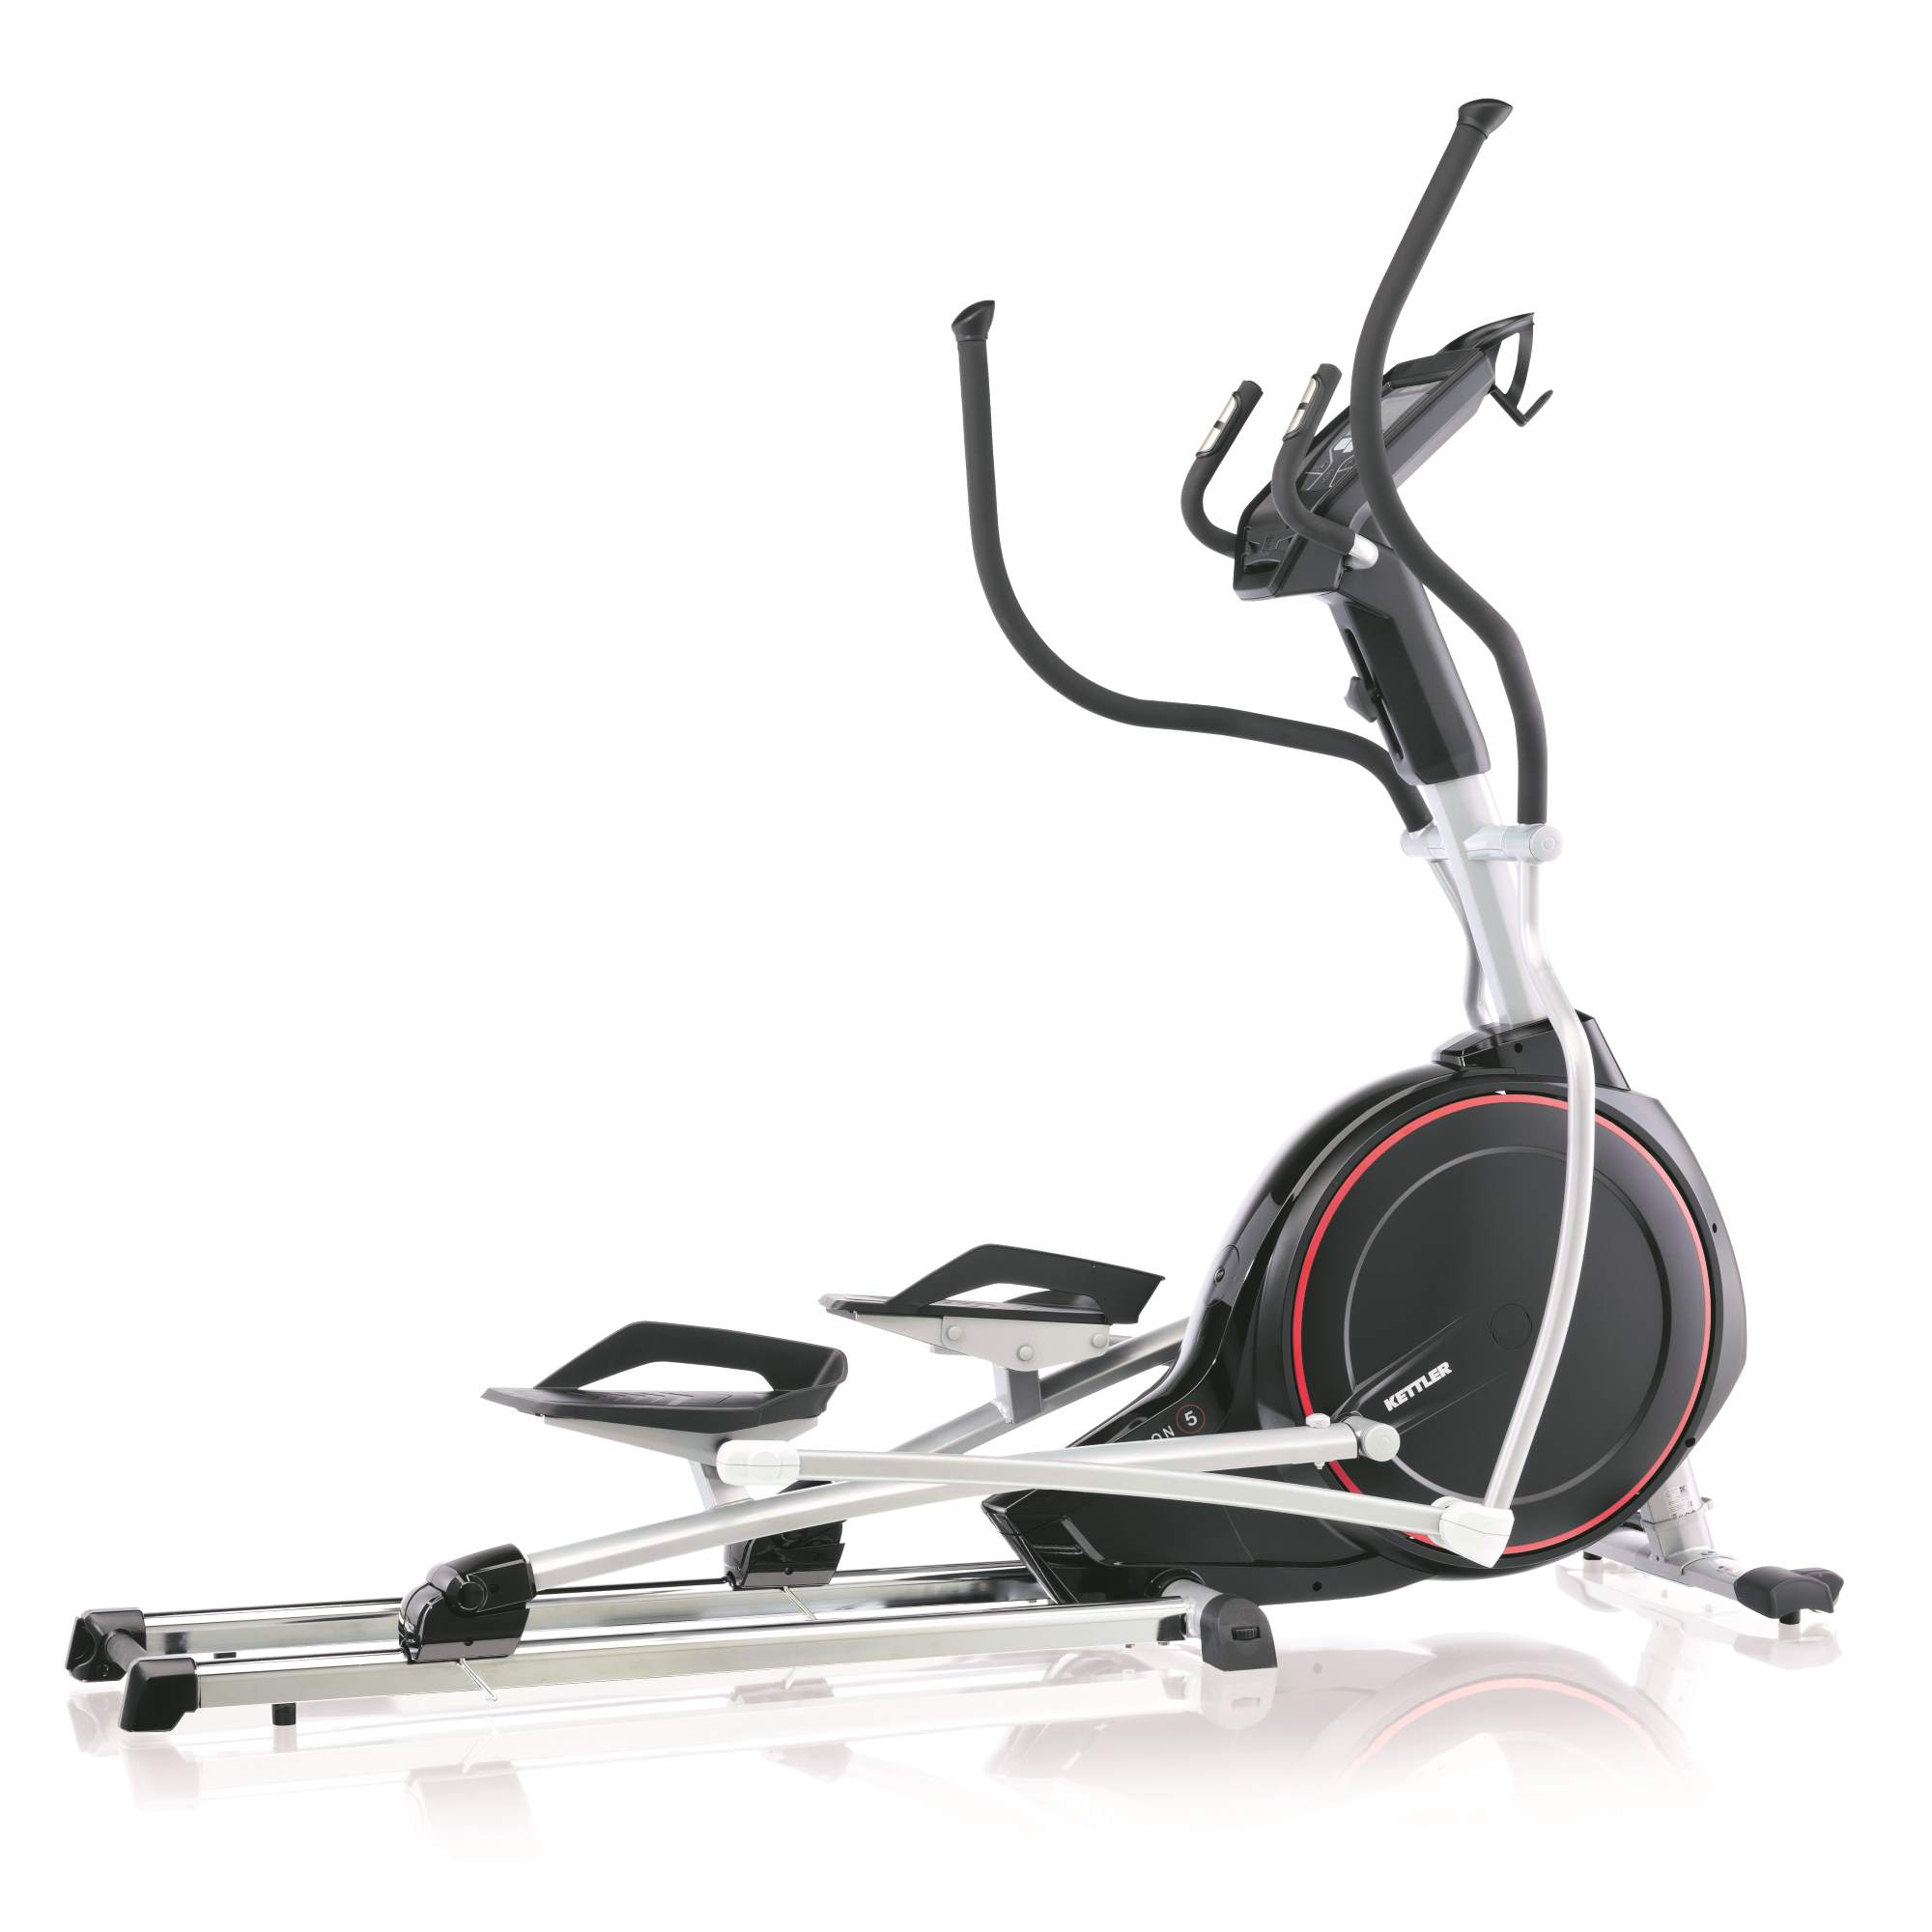 Kettler Skylon 5 Cross Trainer